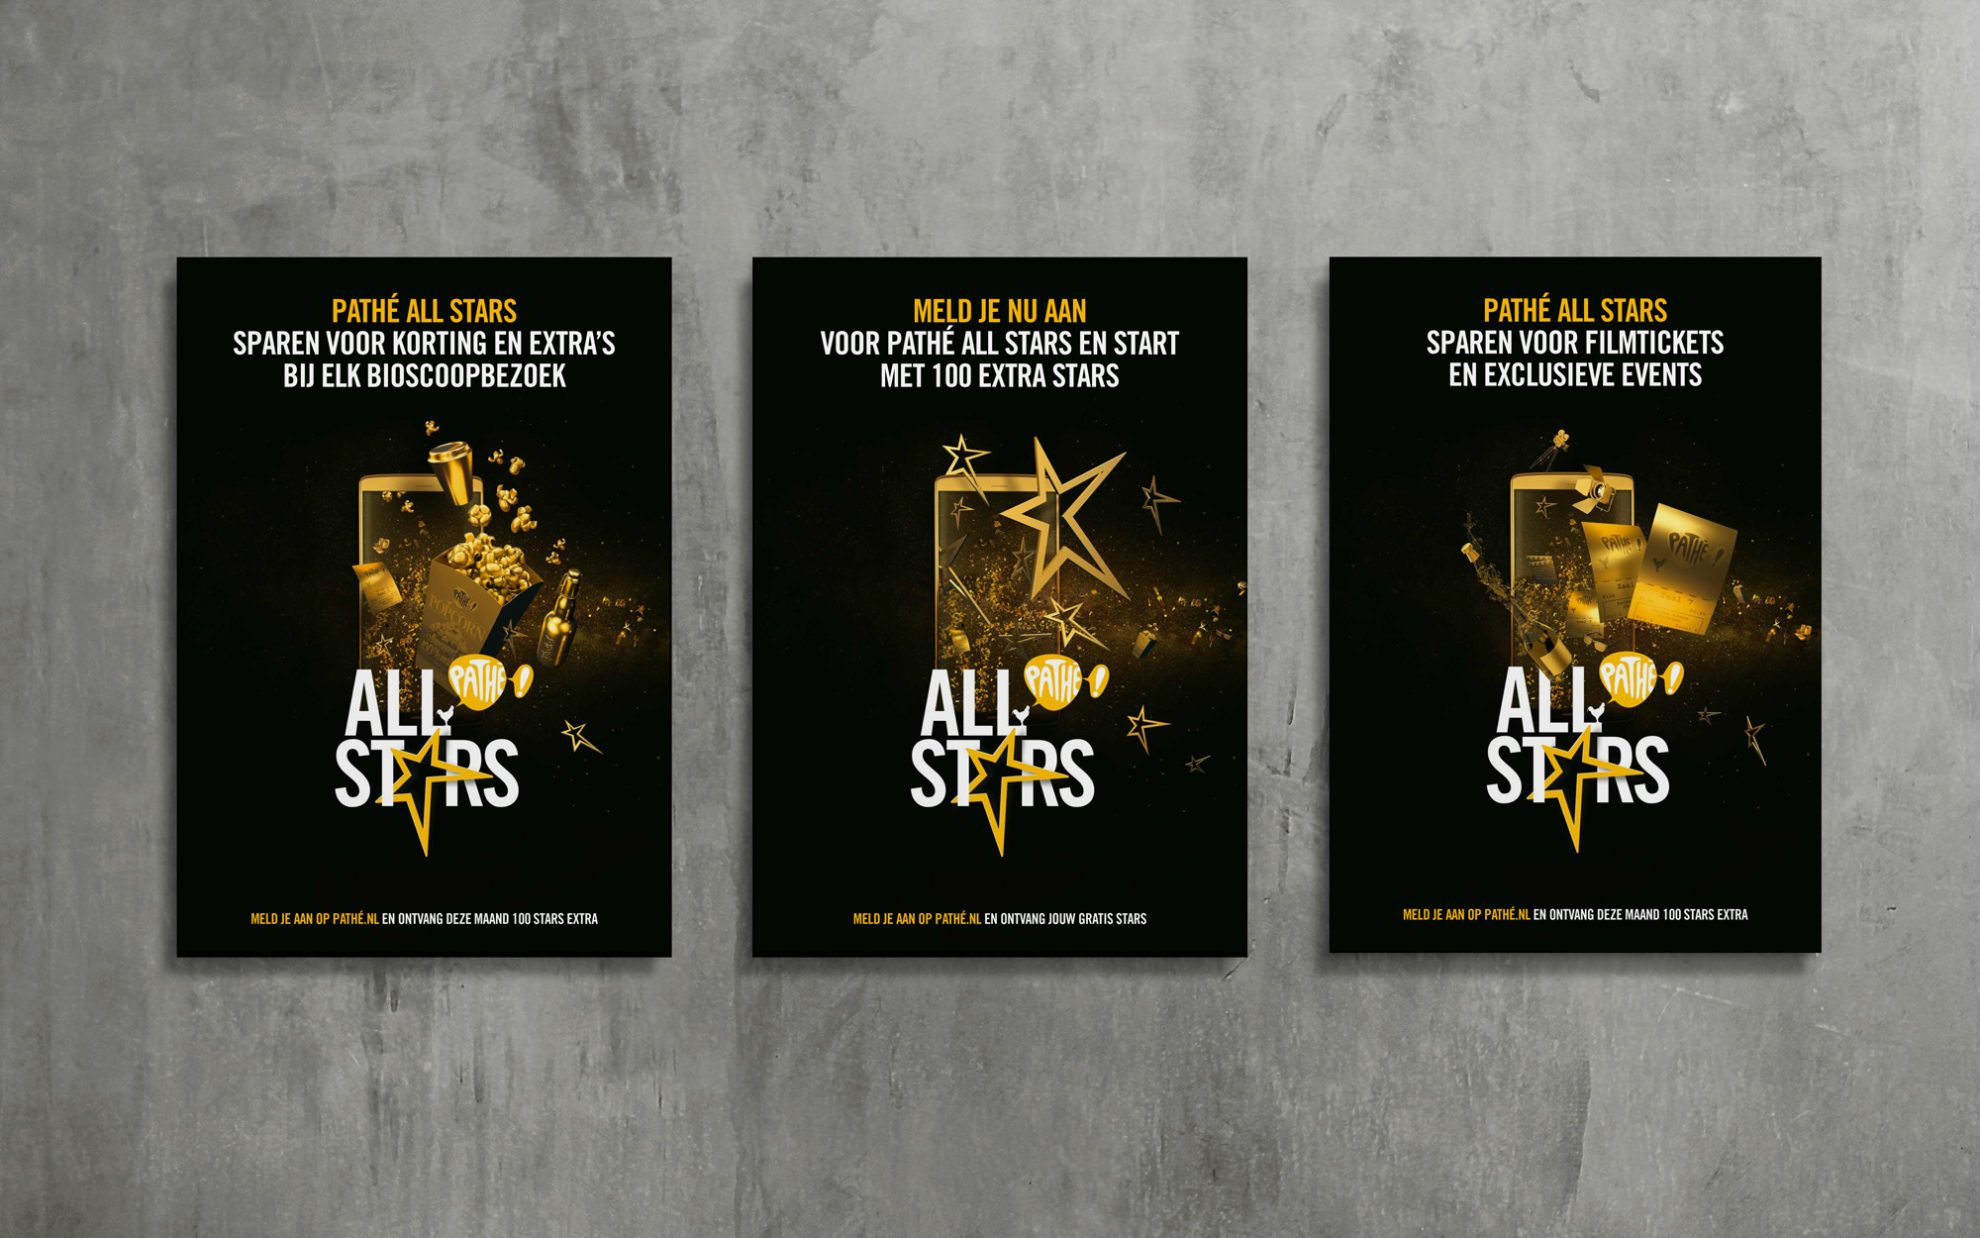 Pathe-All-stars-posters